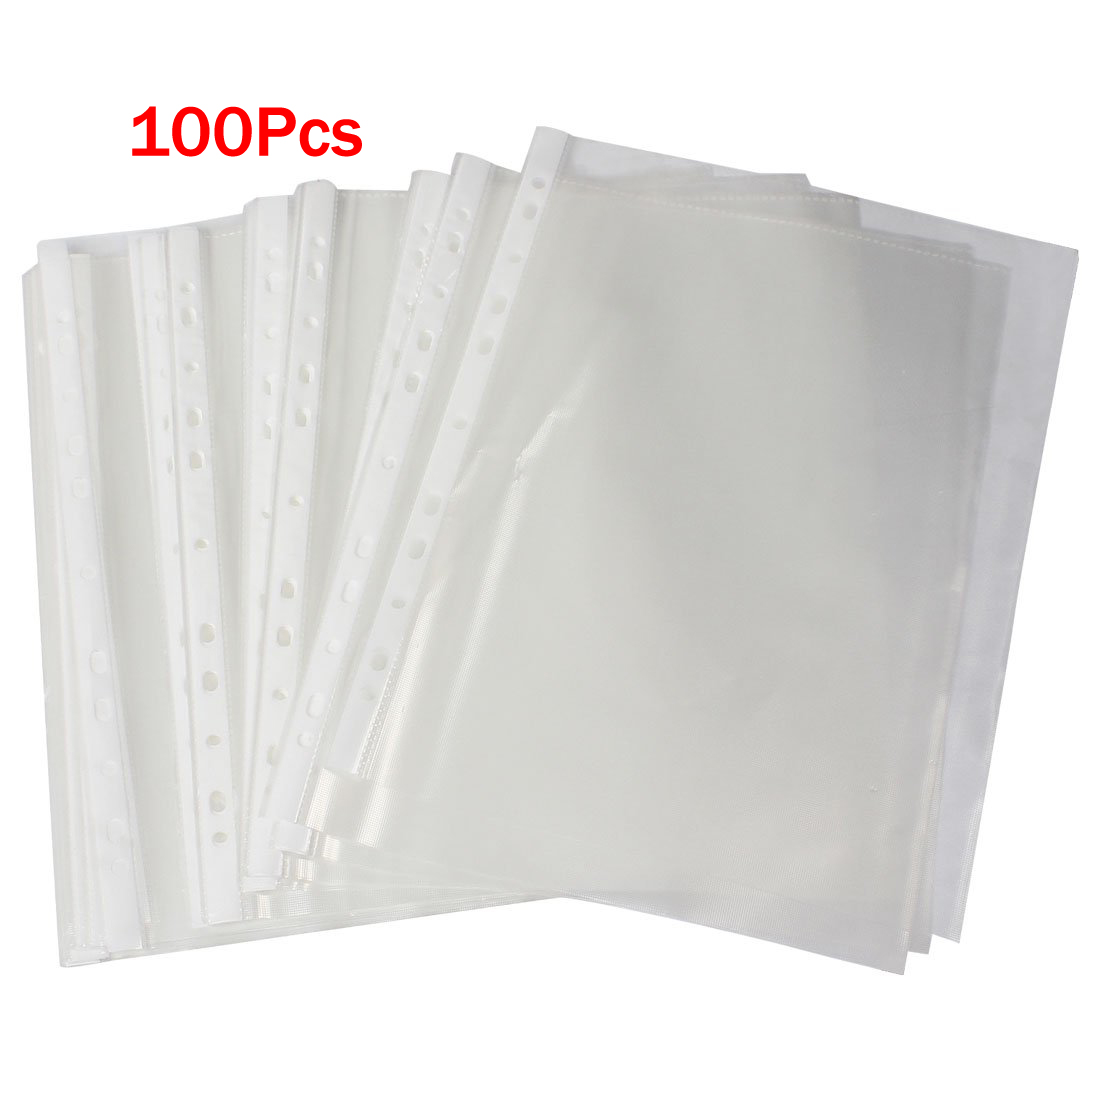 Office A4 Papers Document Sheet Protector Clear White